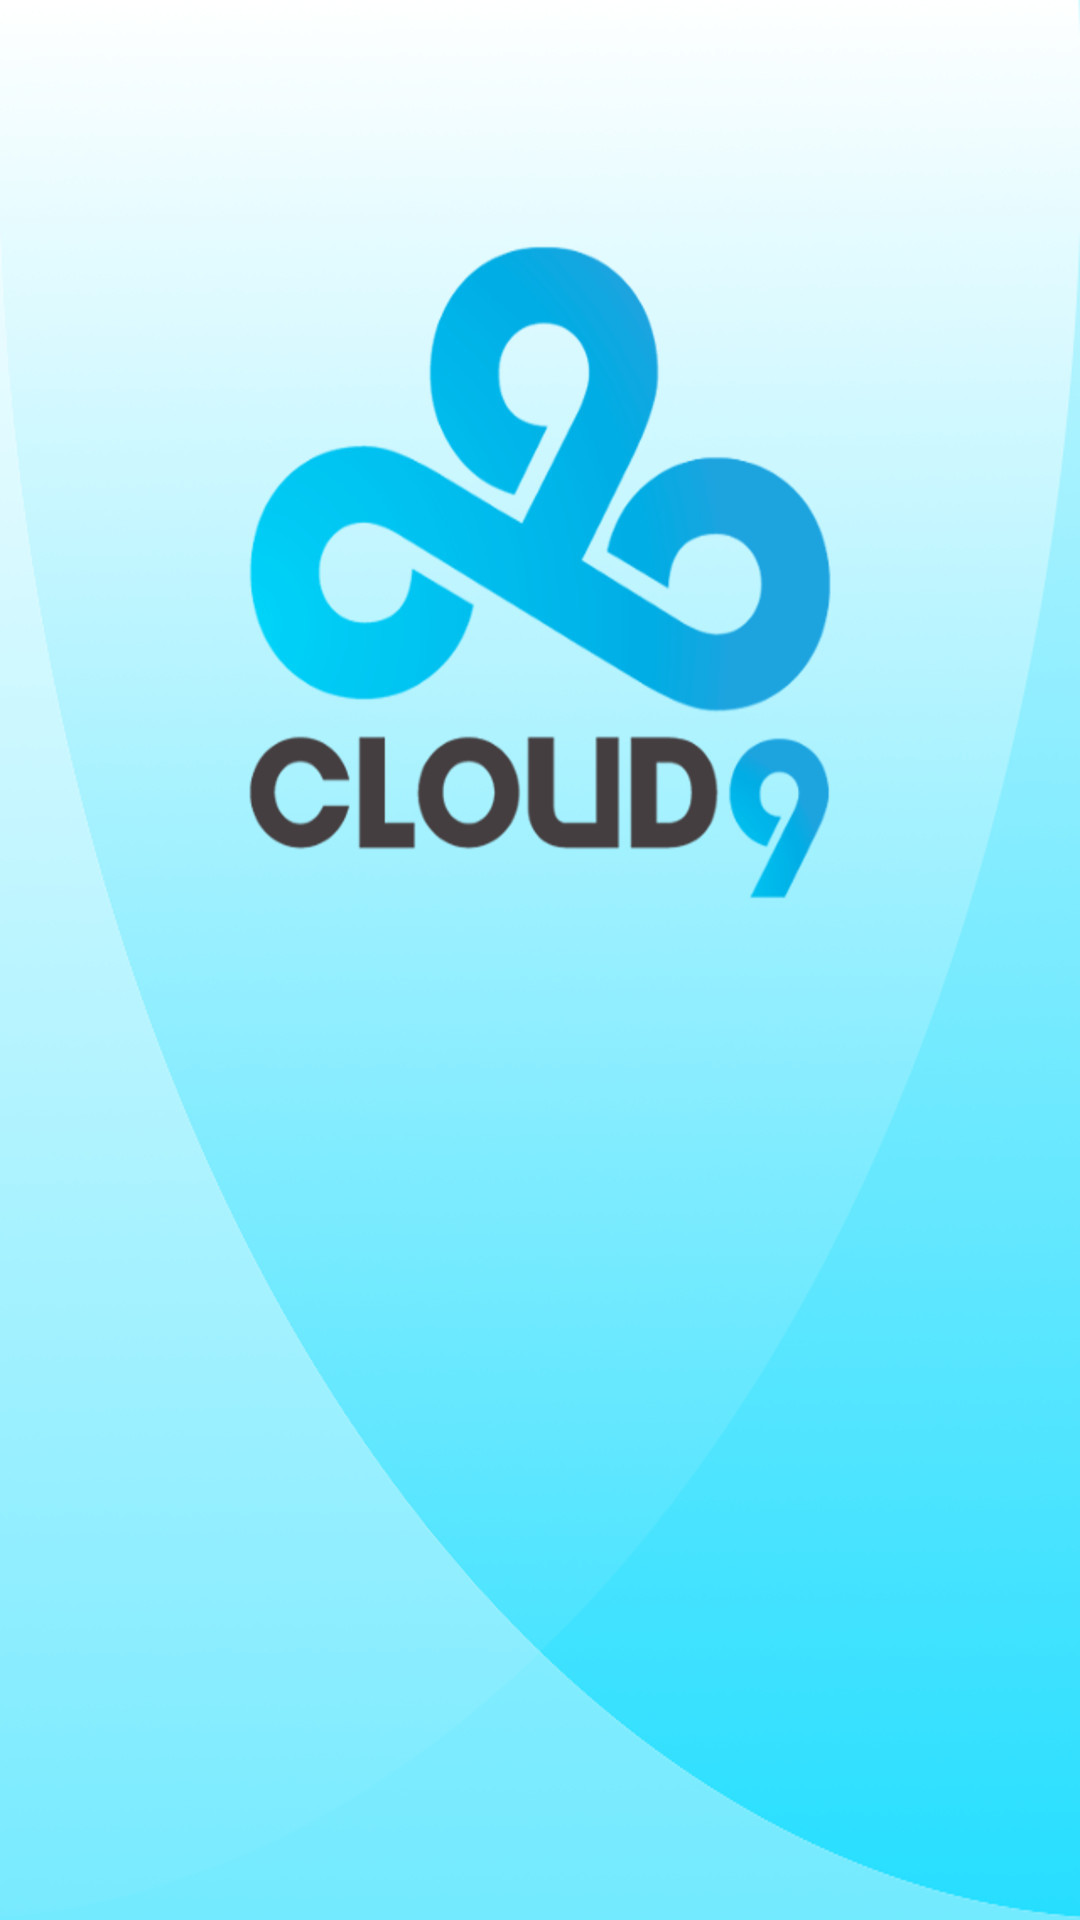 … NA LCS Smartphone Backgrounds – Cloud9 (1080×1920) by kingfr0st